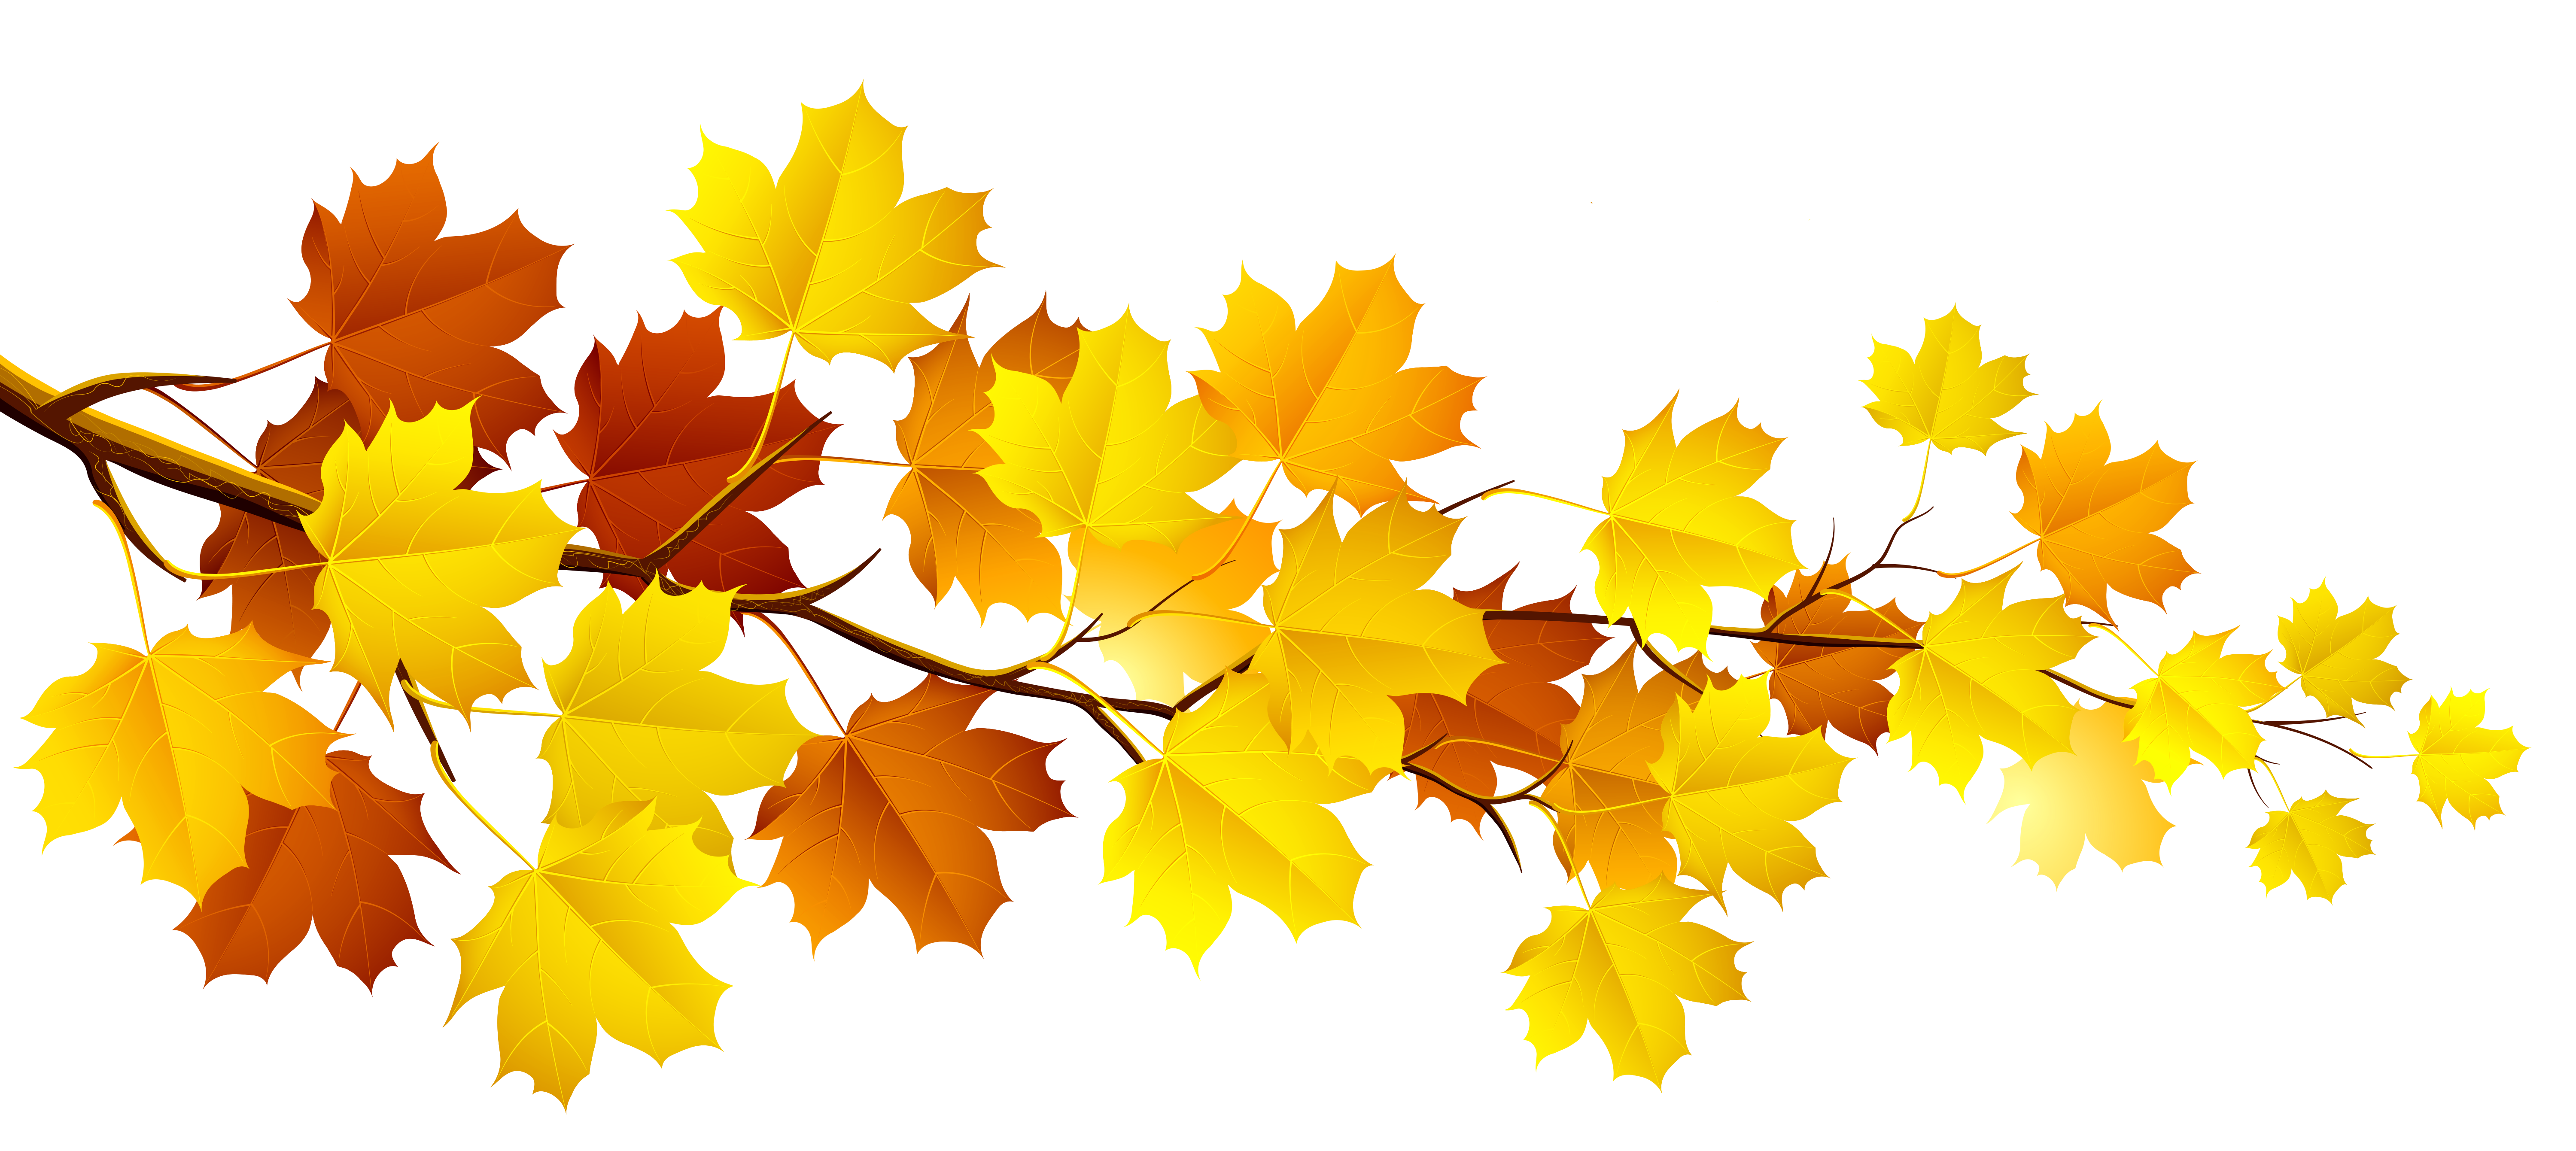 Fall tree branch clipart. With autumn leaves png